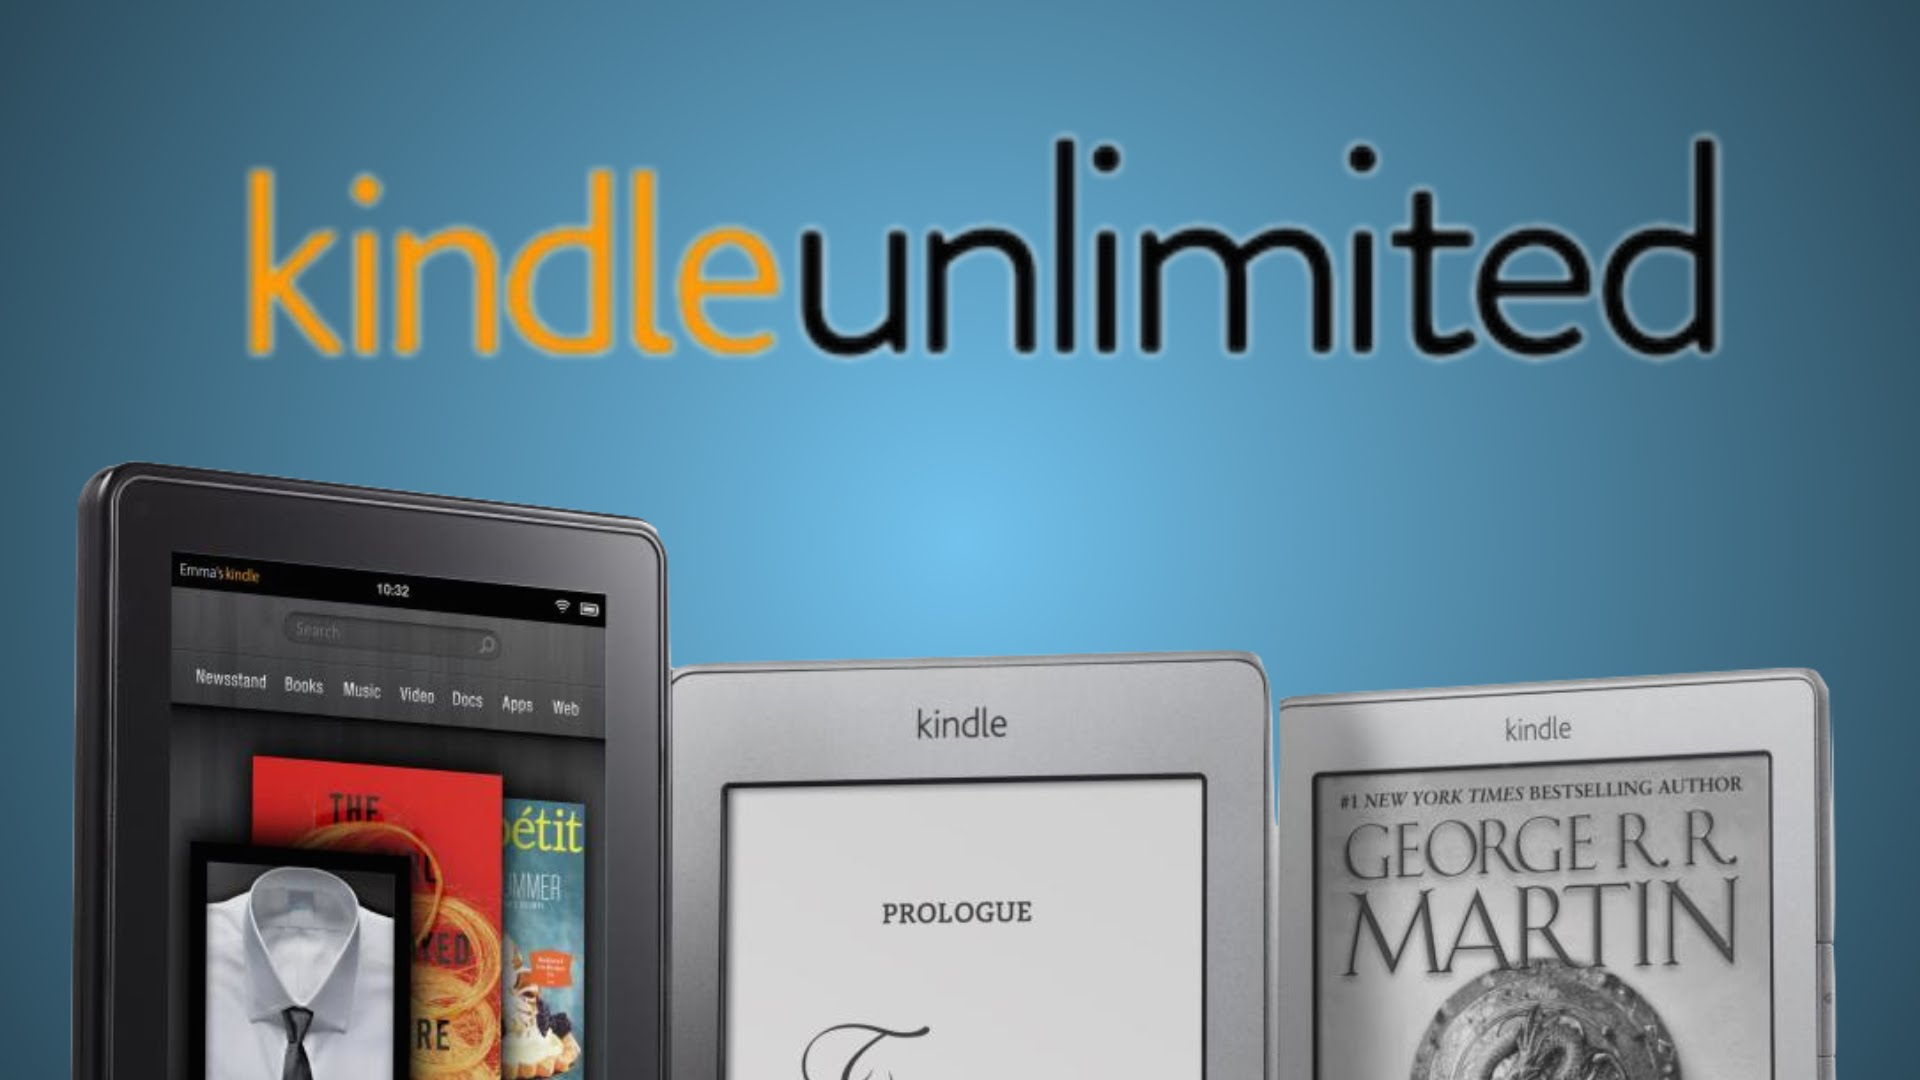 Pay $1 for a 3-month Kindle Unlimited subscription and enjoy access to over one million books